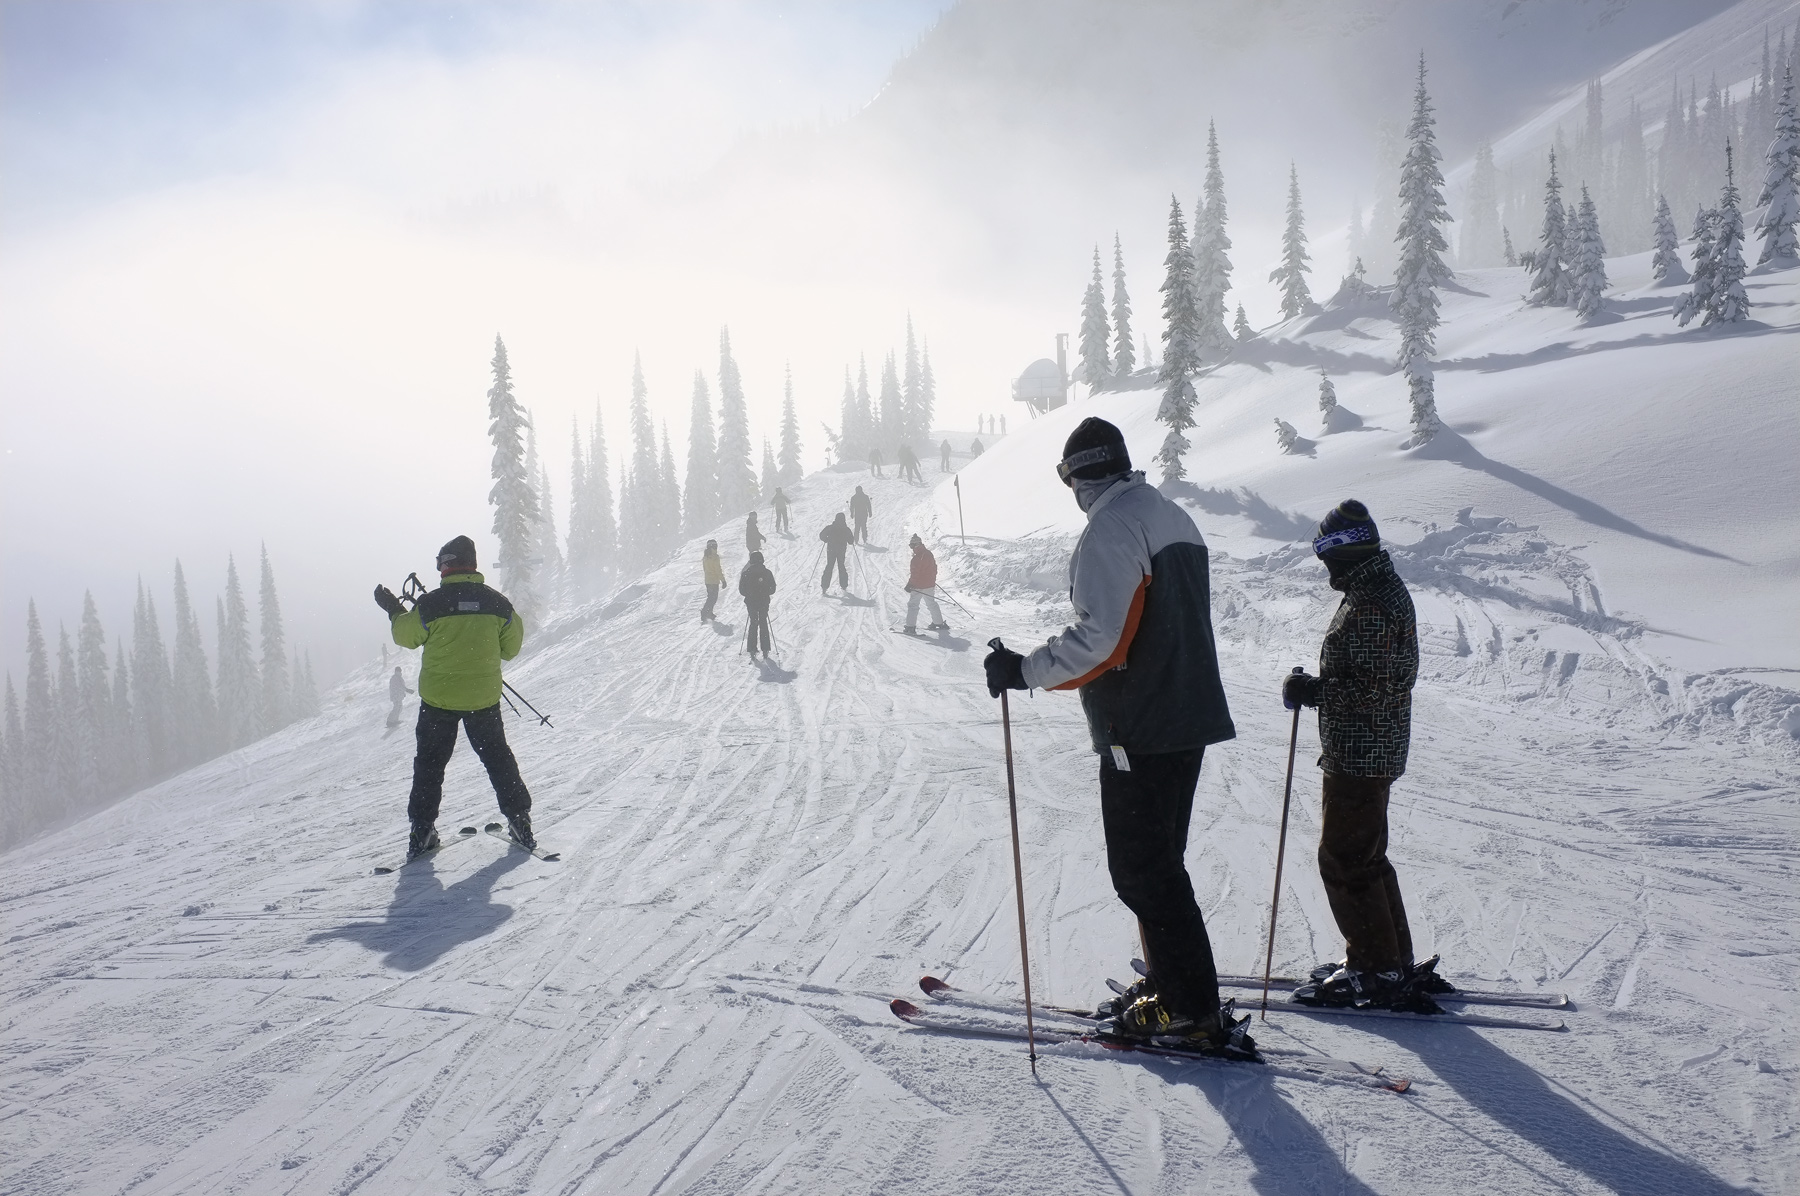 At the top of the Timber bowl the cloud still veiled the mountains around the logging town of Fernie. The experience of...